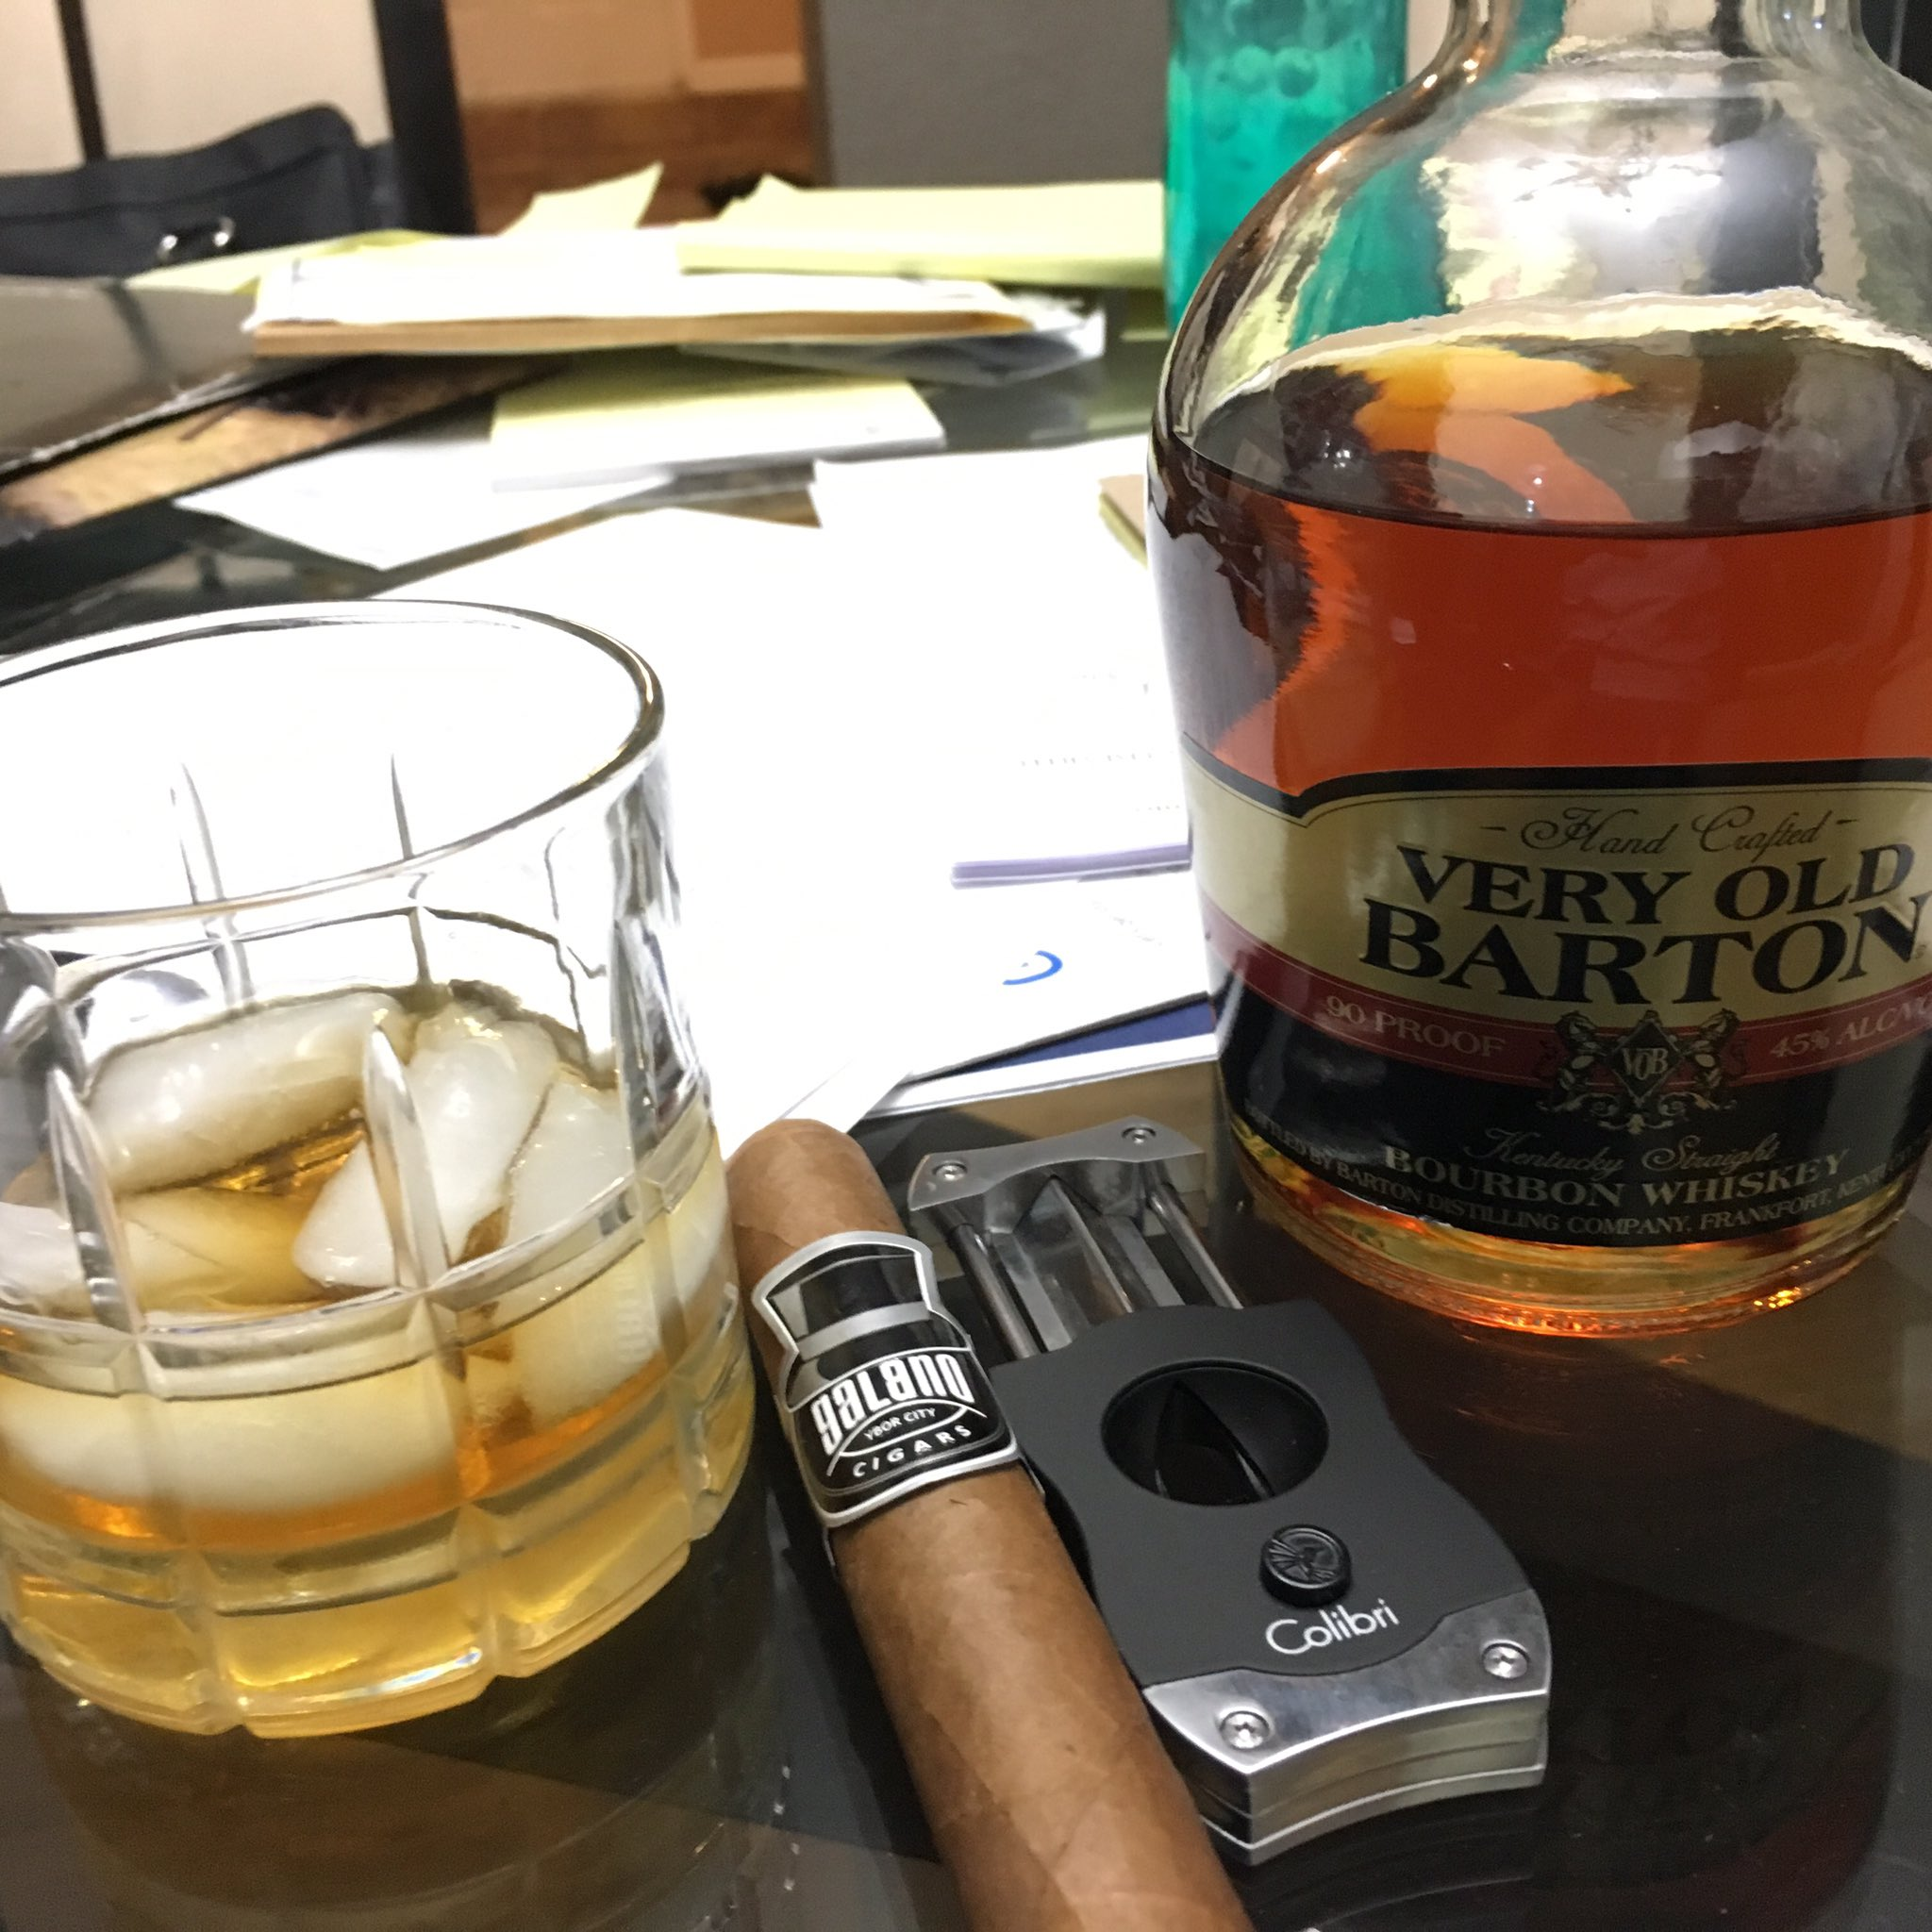 You know you had a long day at work, when you need a glass of #bourbon and a #cigar https://t.co/5743YHD0Ei